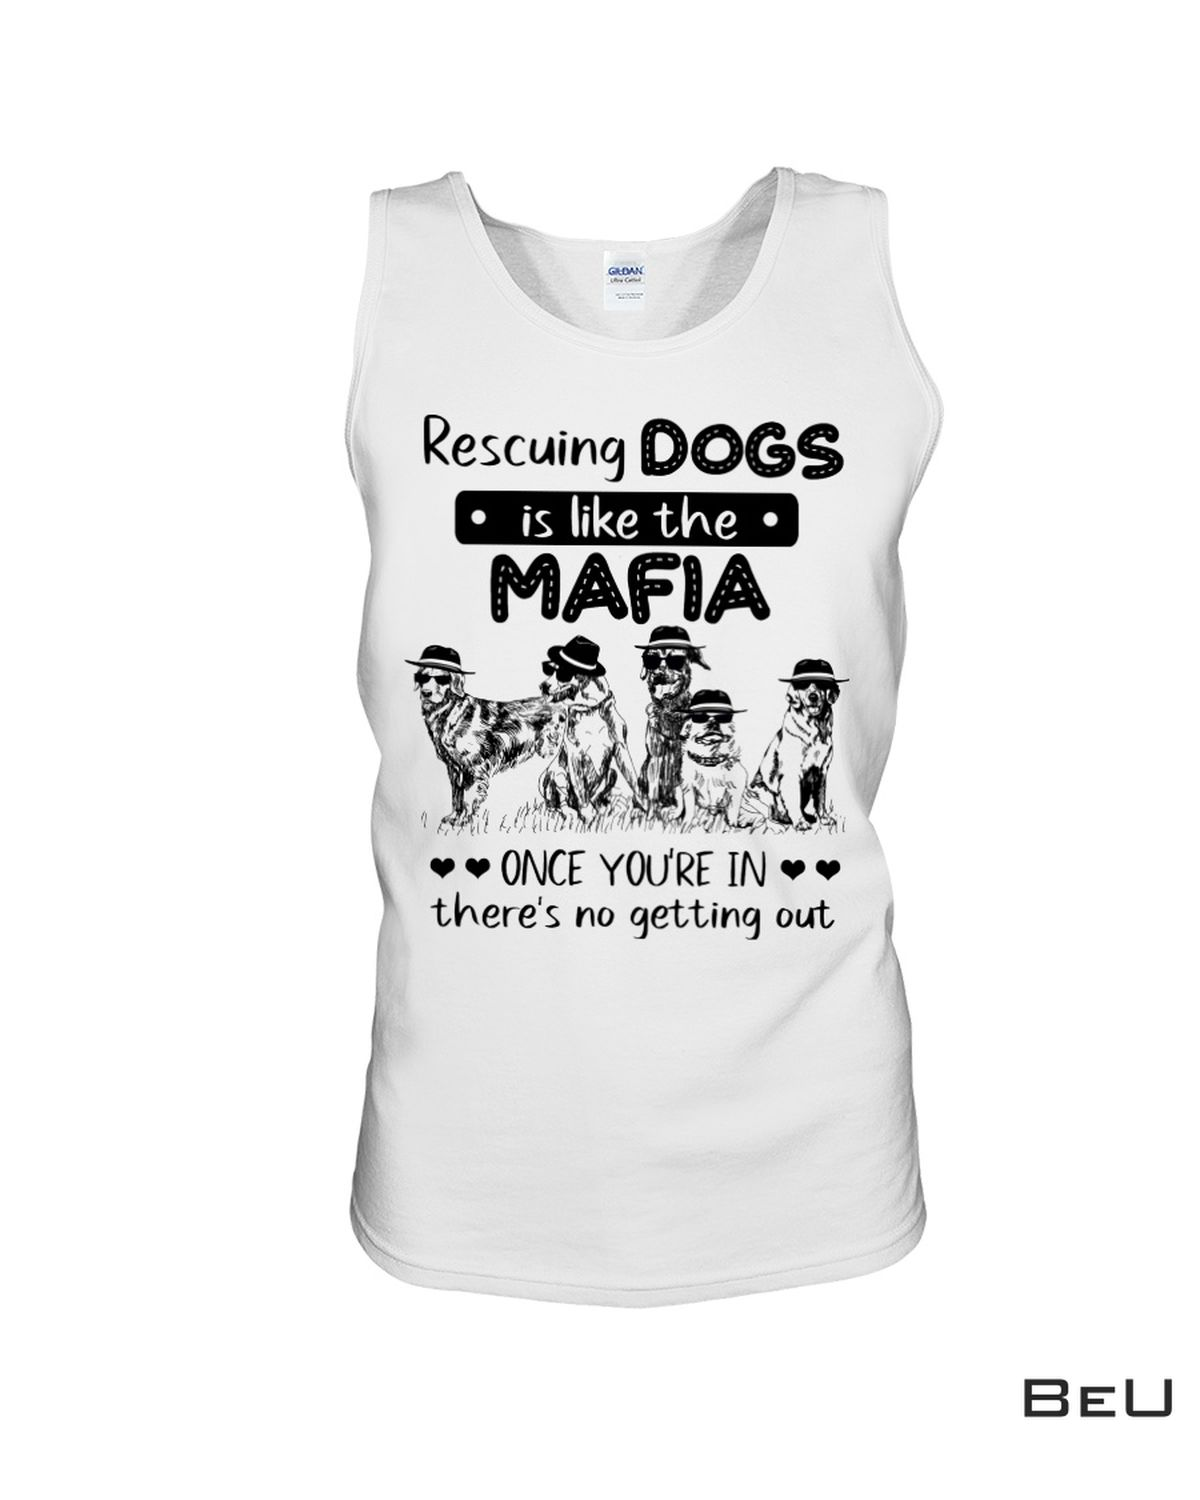 Rescuing Dogs Is Like The Mafia Shirt c